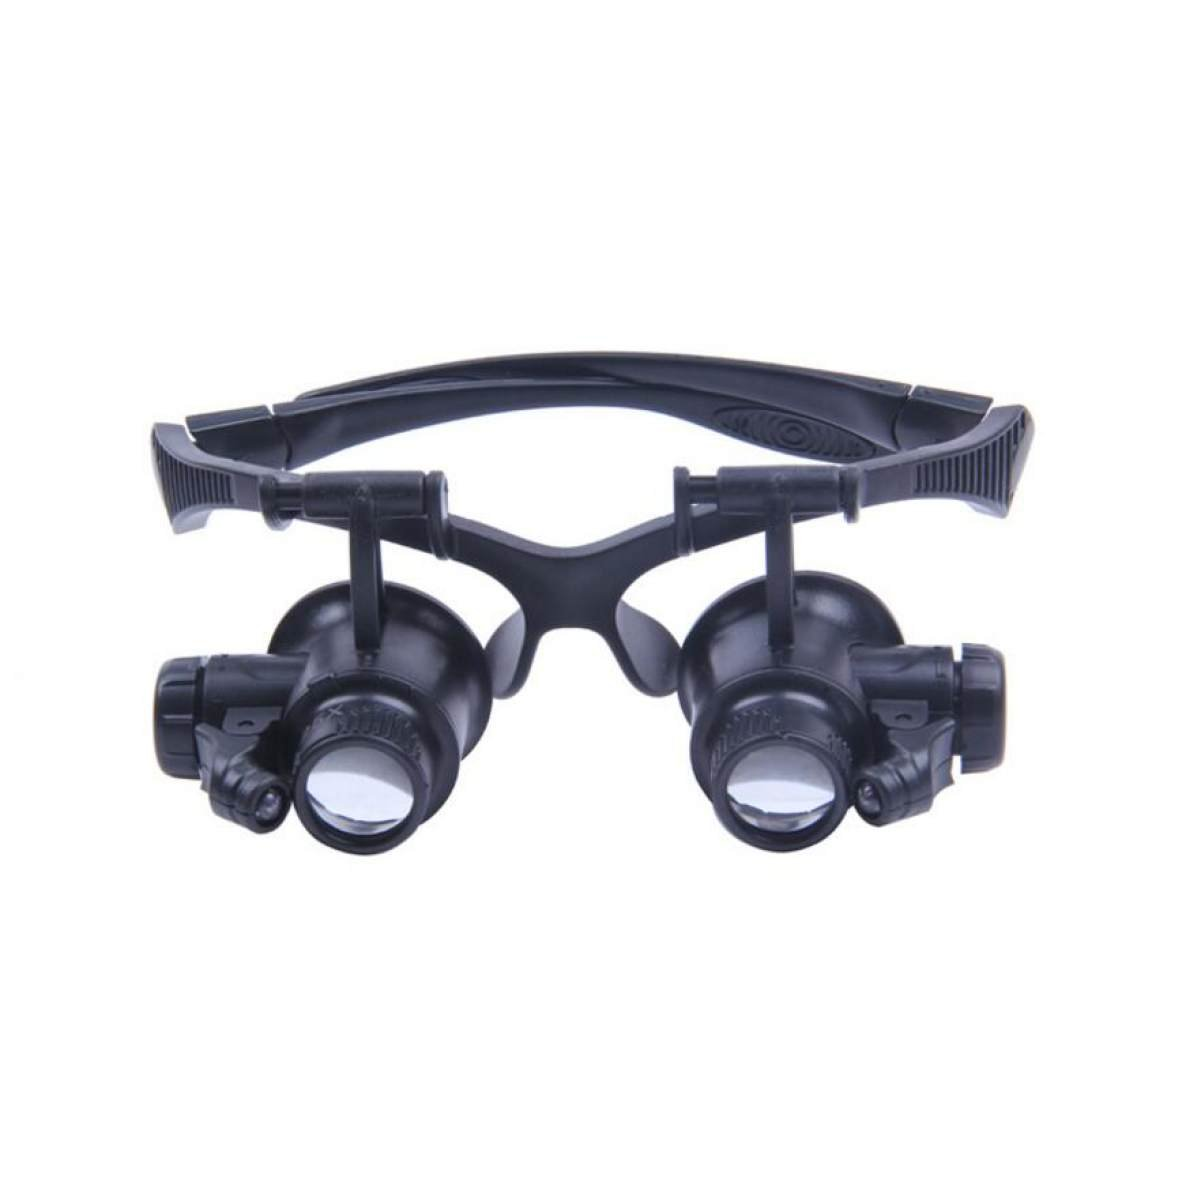 Magnifying Glass Binocular Lighting Goggles Magnifying Glass LED Spectacle Watch Repair Magnifying Glass Reading Magnifying Glass Elderly Children Christmas Gifts